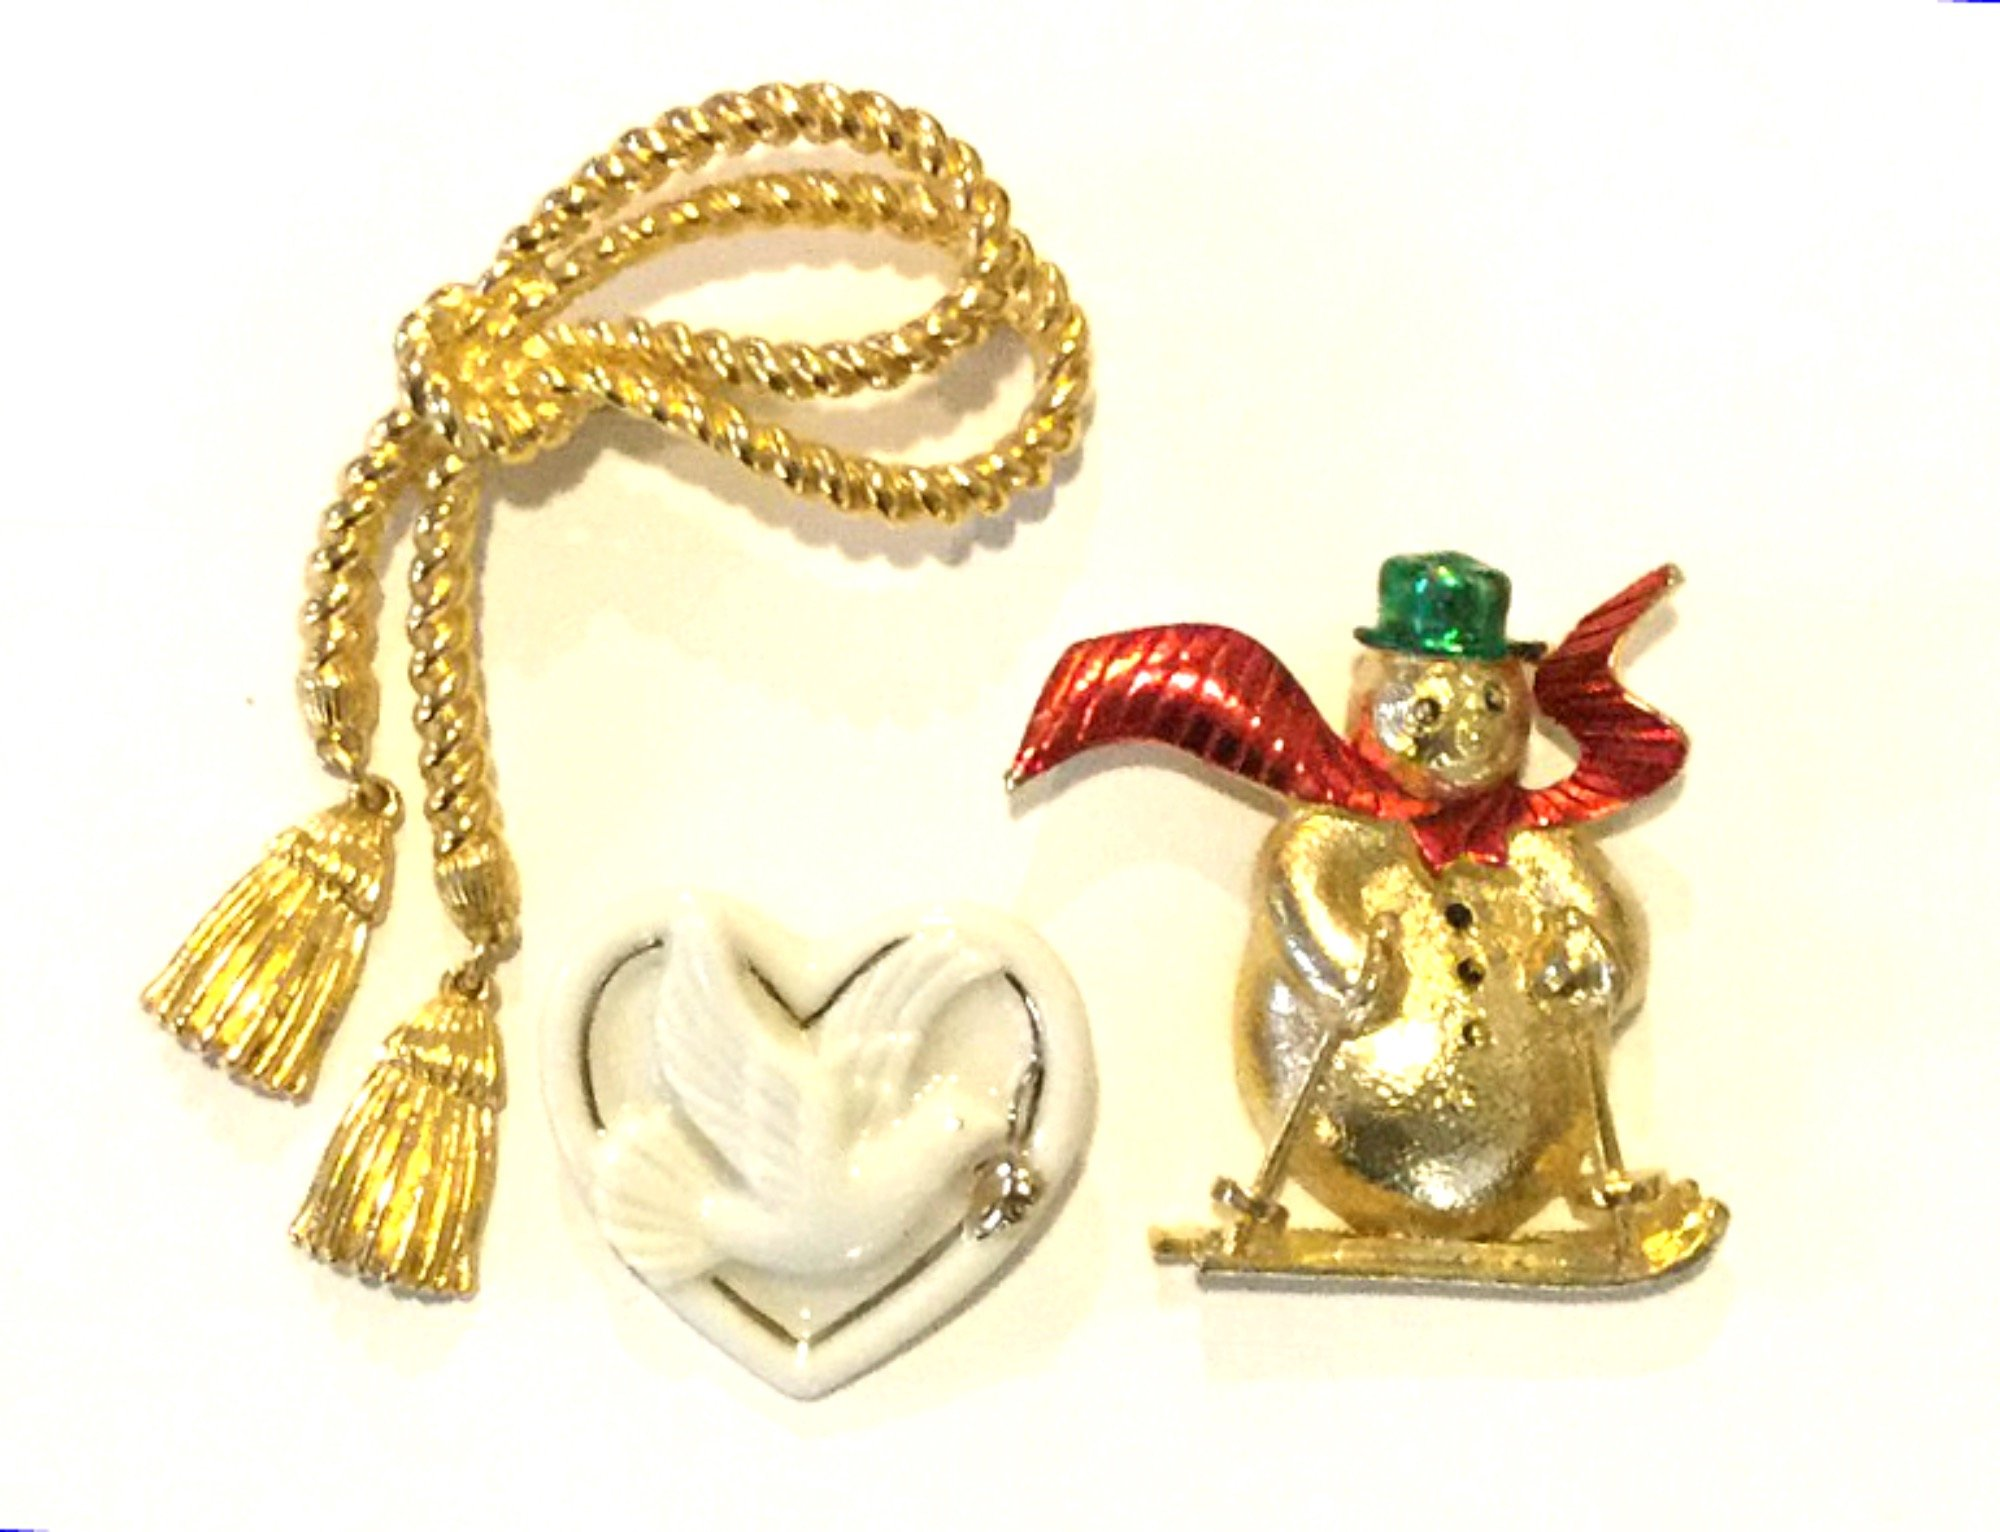 Christmas Snowman Tassels Lenox Heart THREE Vintage Enamel Porcelain and Goldtone Costume Jewelry Pins